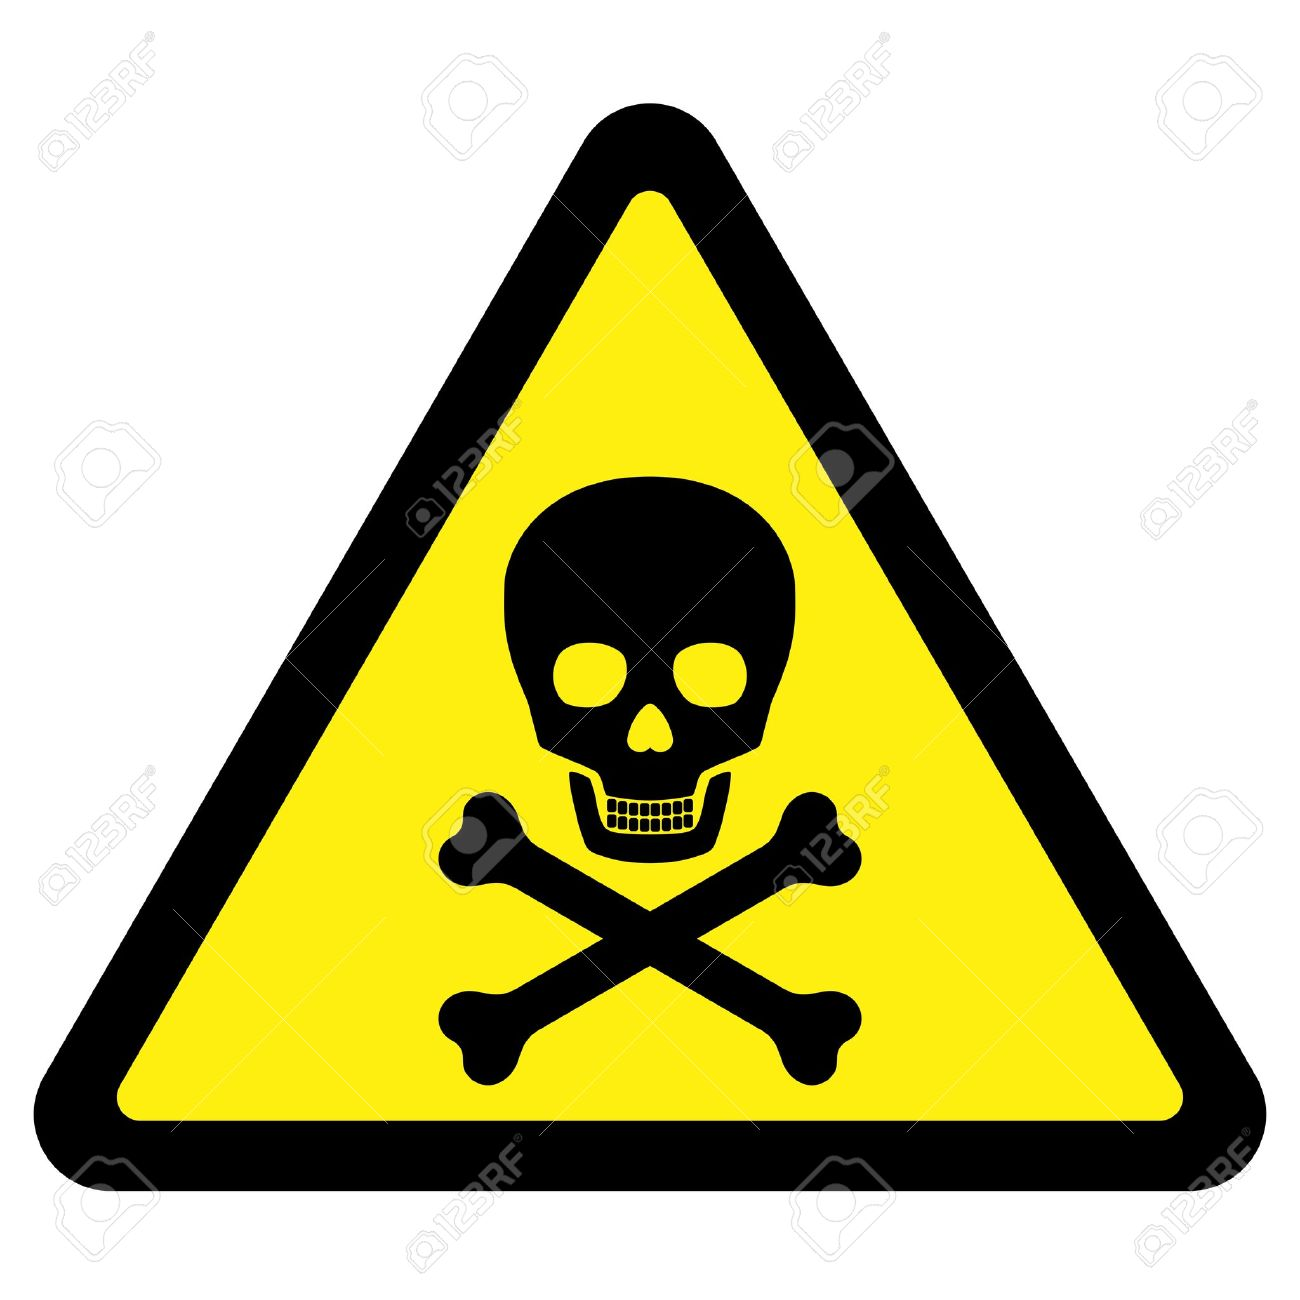 deadly poisonous clipart clipground Horse Racing Clip Art Wipe Out Clip Art